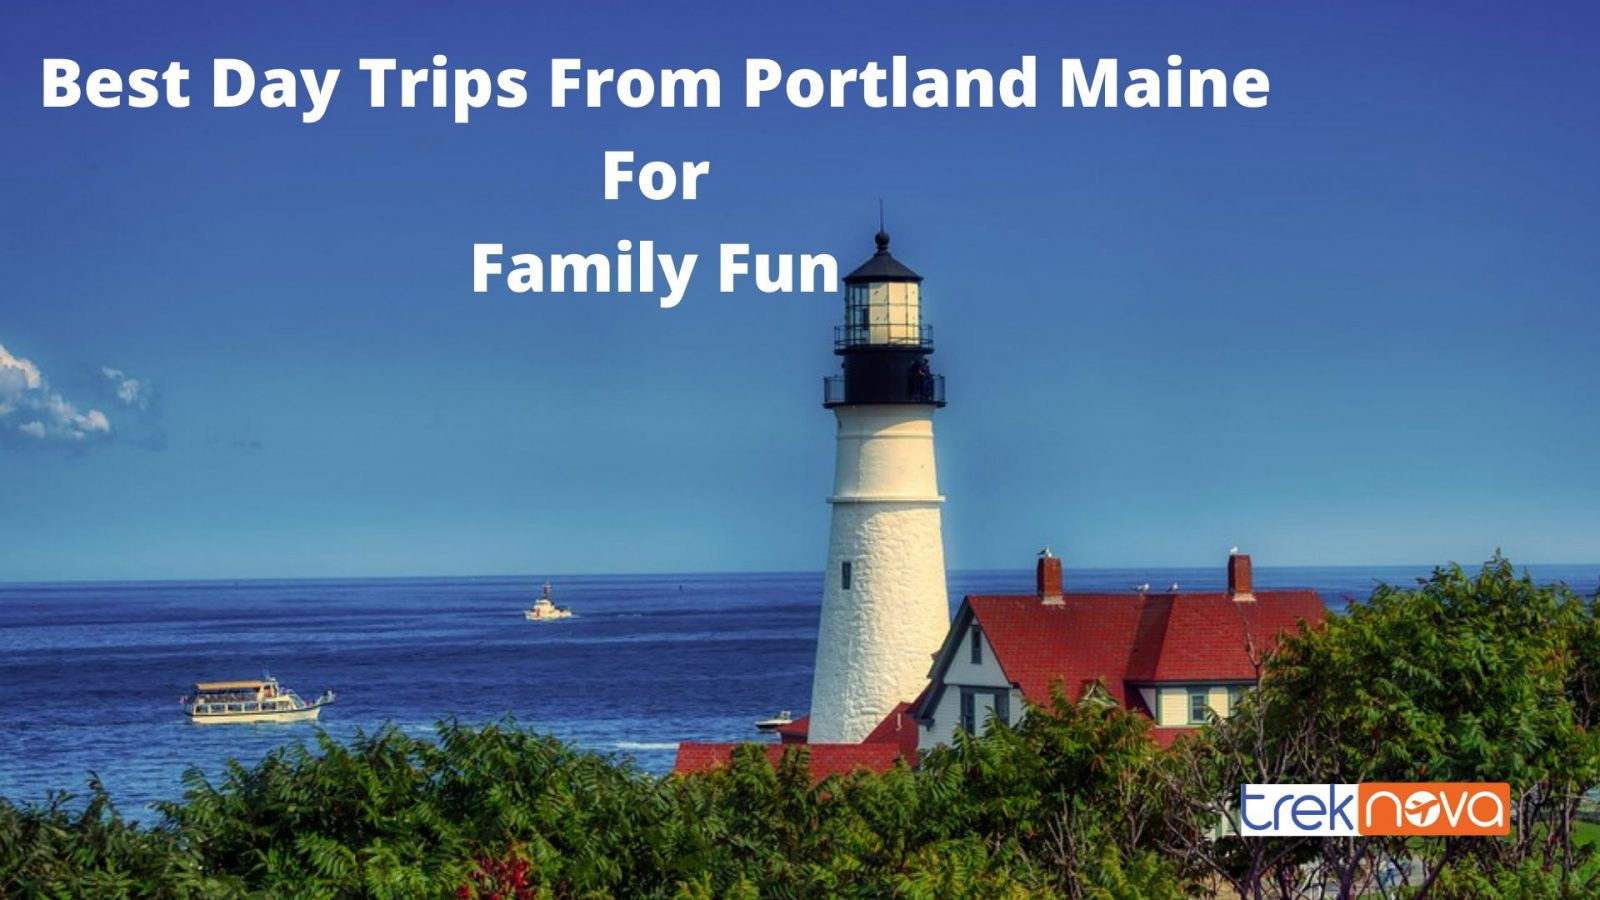 Best Day Trips From Portland Maine For Family Fun